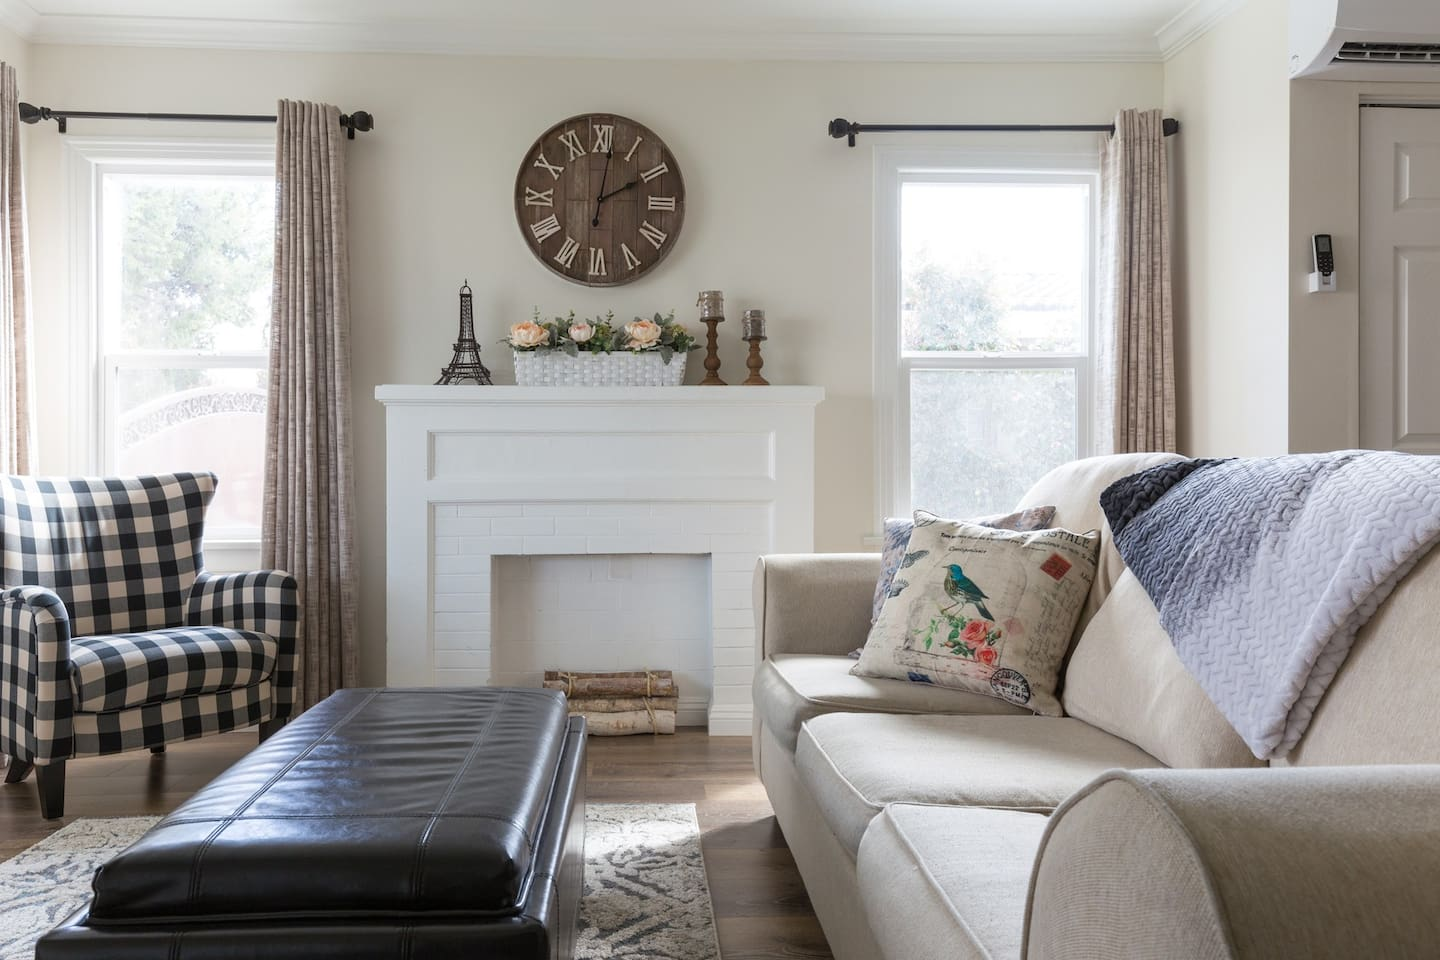 French Country farmhouse inspired. Spacious living room to a total of 850 Sq Ft living space